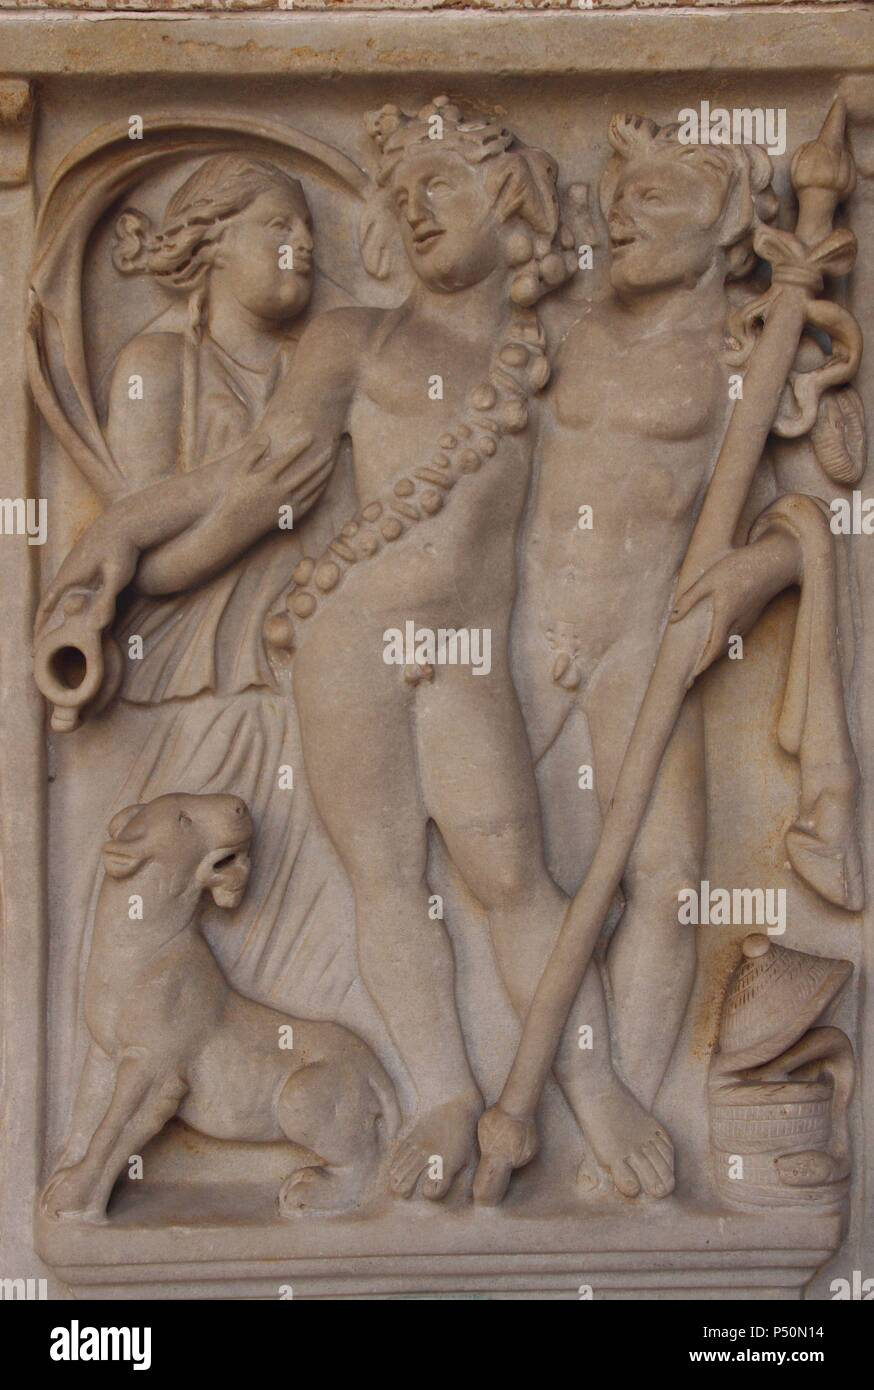 Dionysus, god of wine. Relief of roman sarcophagus depicting Dionysos with Maenad, satyr and Panther. Vatican Museums. City of the Vatican. Stock Photo